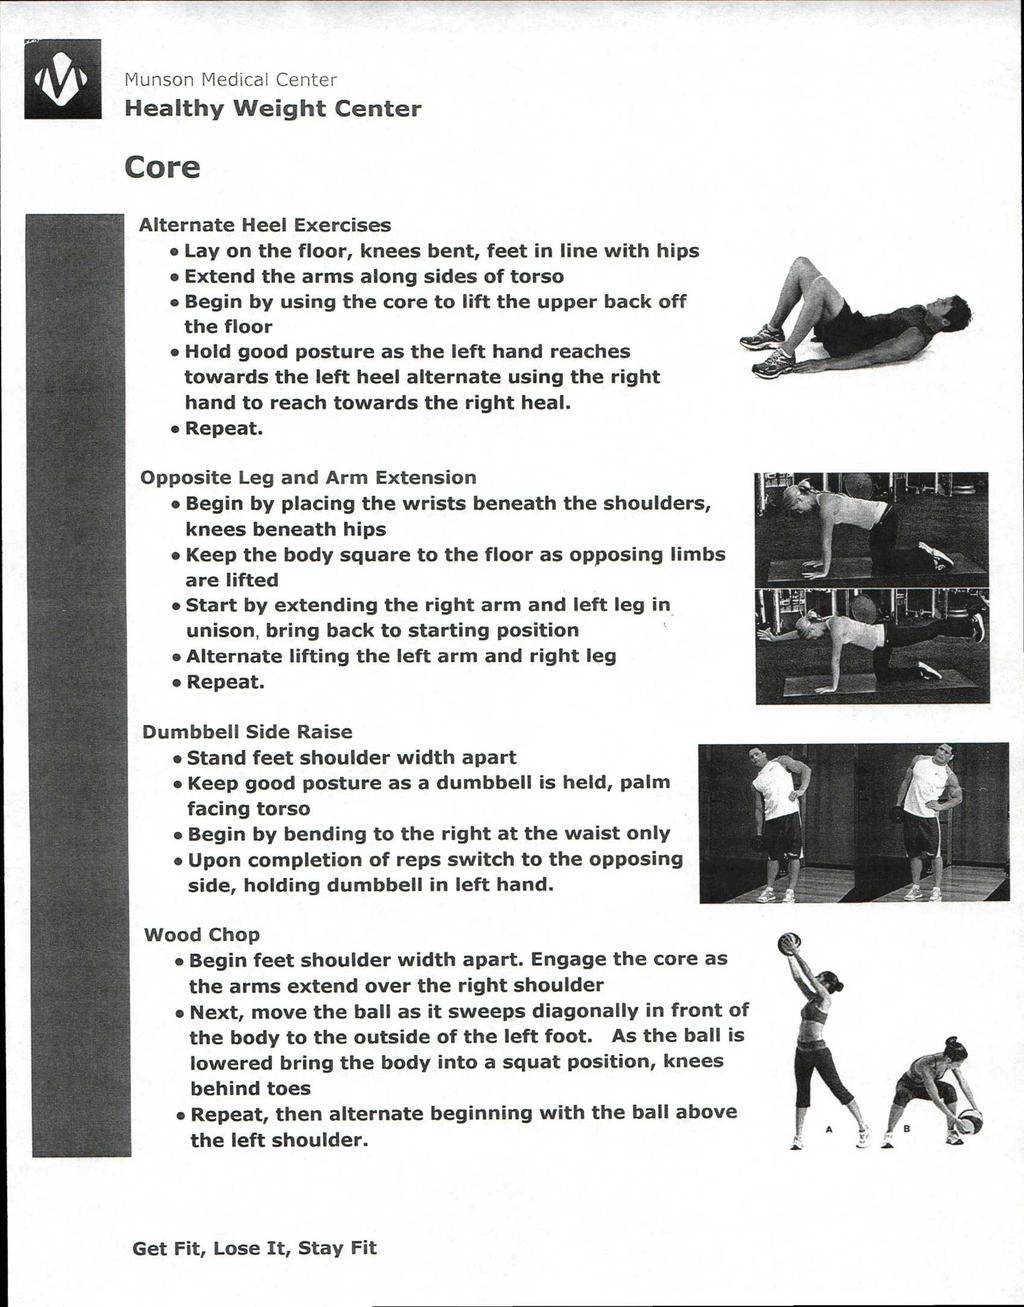 "(4, In"" Munson Medical Center Core Alternate Heel Exercises Lay on the floor, knees bent, feet in line with hips Extend the arms along sides of torso Begin by using the core to lift the upper back"